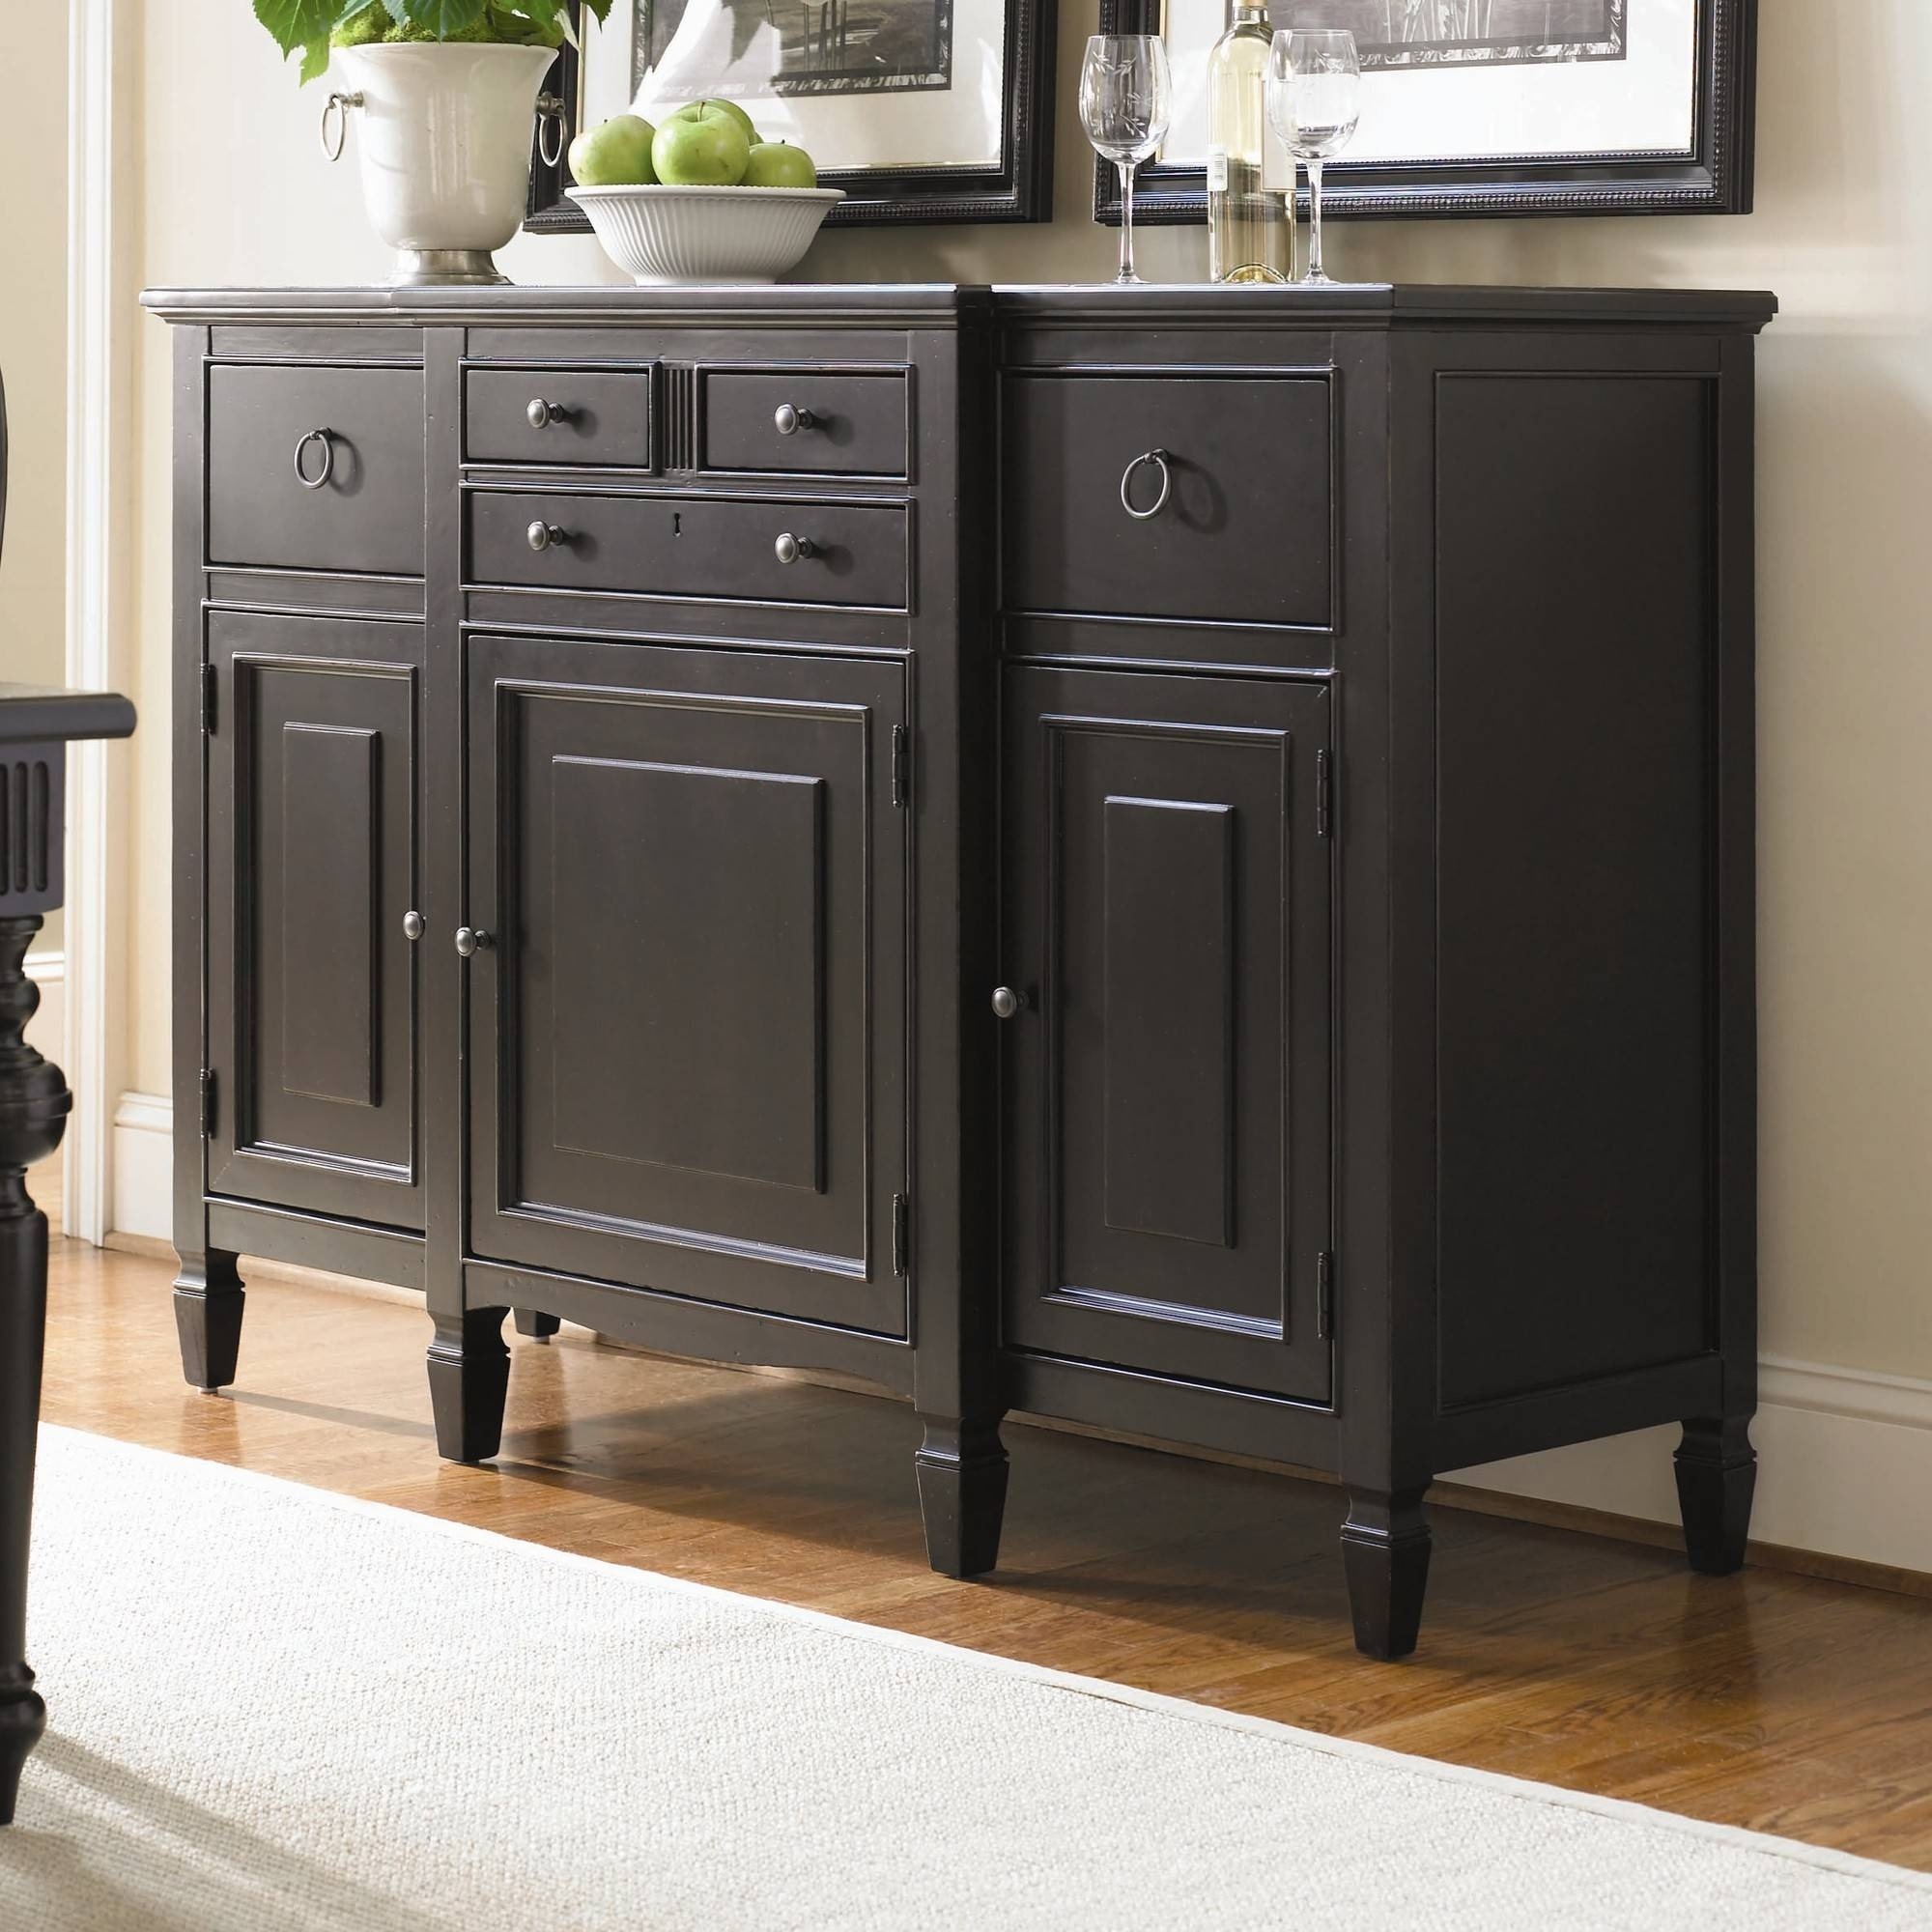 Dining Room Buffet Cabinet Sideboards Buffets Storage Servers 17 Pertaining To Black Dining Room Sideboards (View 2 of 15)